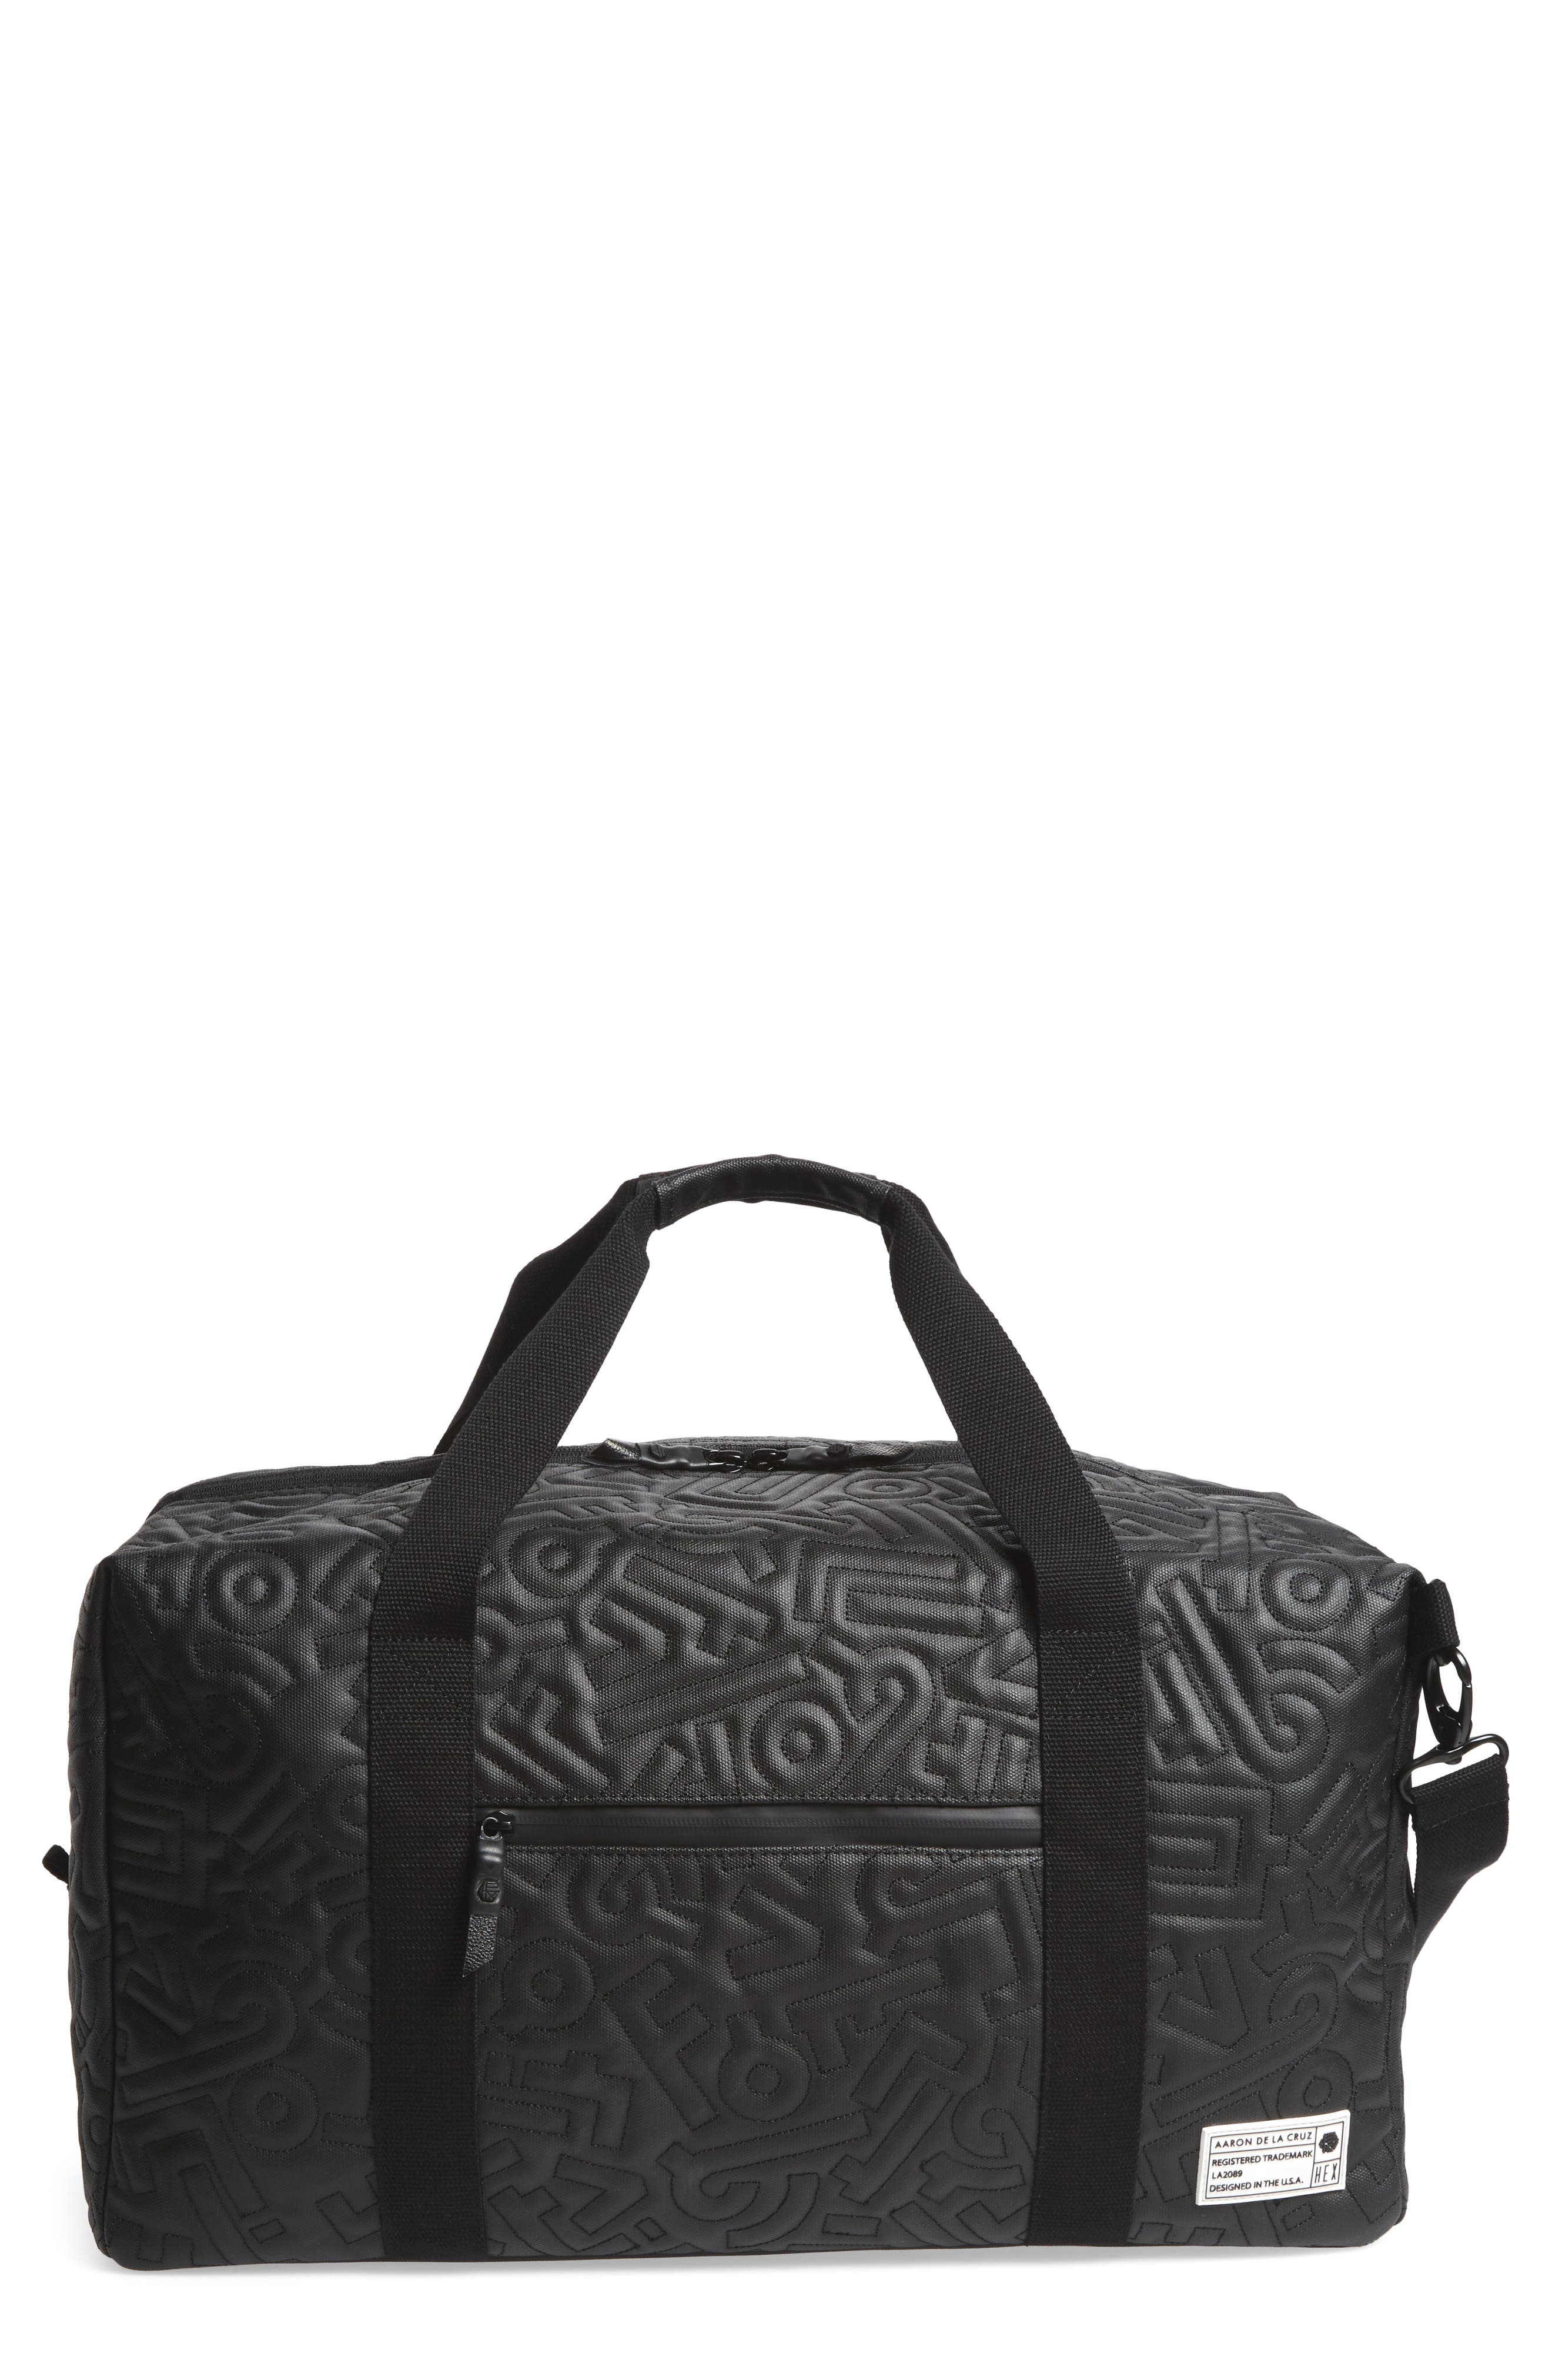 x Aaron De La Cruz Drifter Duffel Bag,                             Main thumbnail 1, color,                             Black Quilt